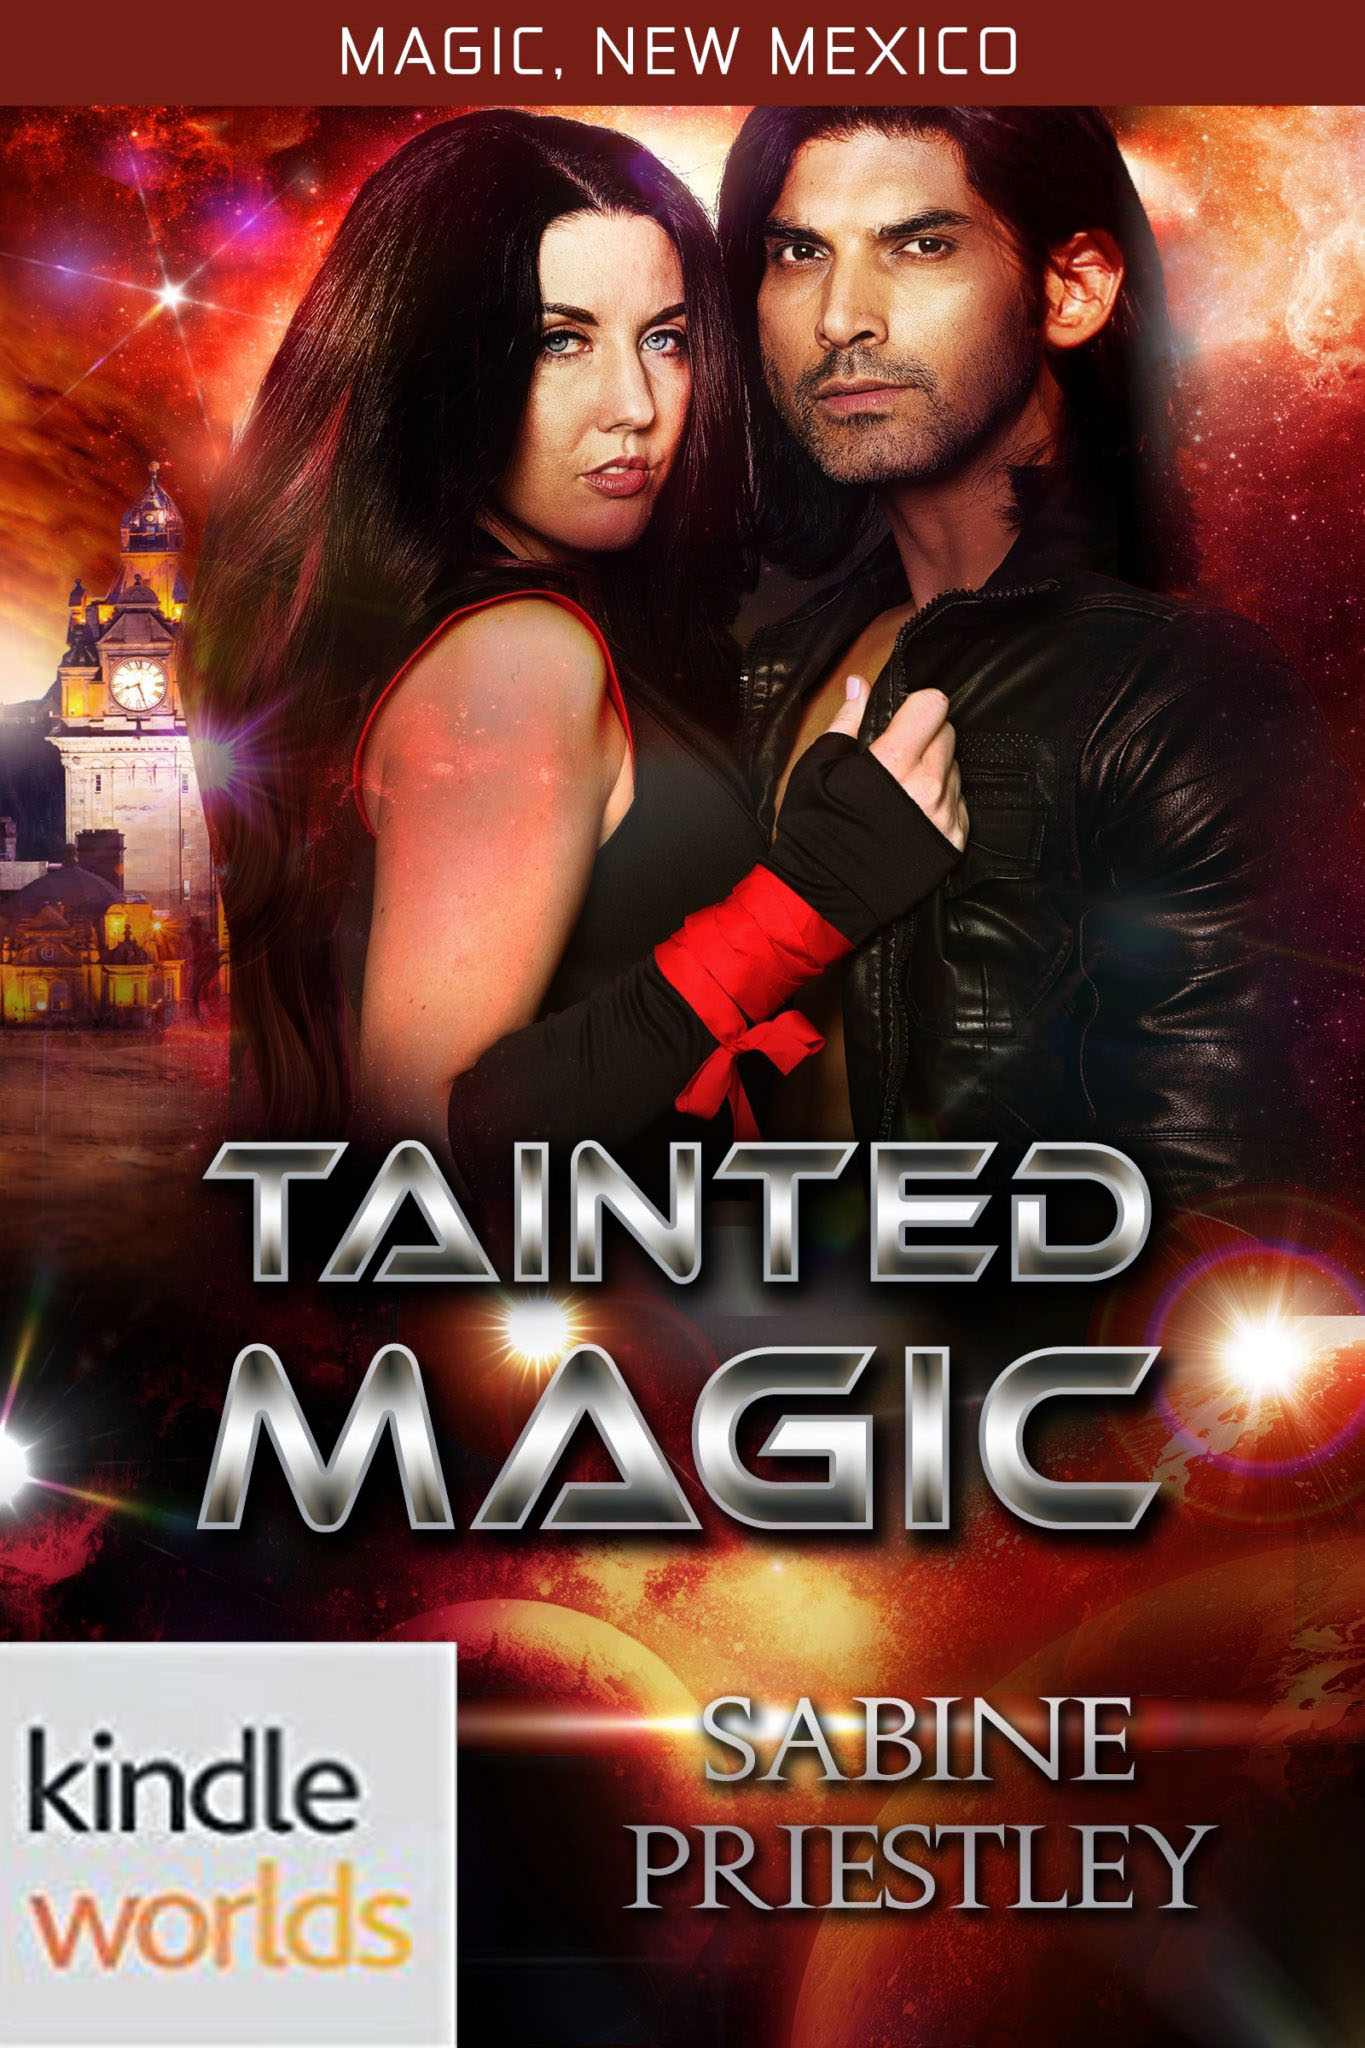 Tainted Magic by Sabine Priestley KW